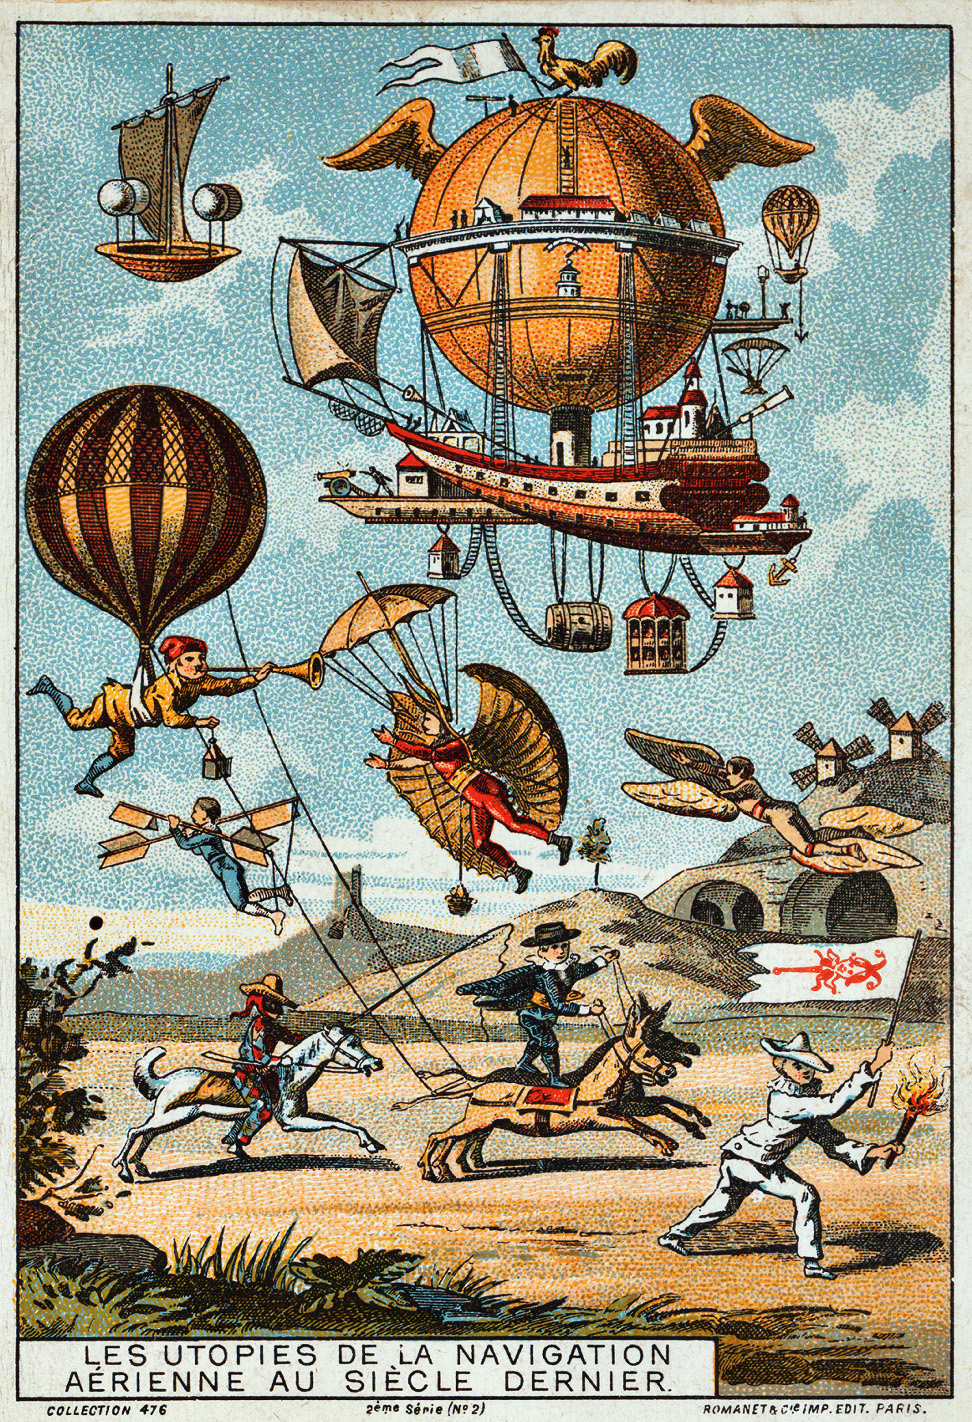 utopia  utopian flying machines 1890 1900 chromolithograph trading card